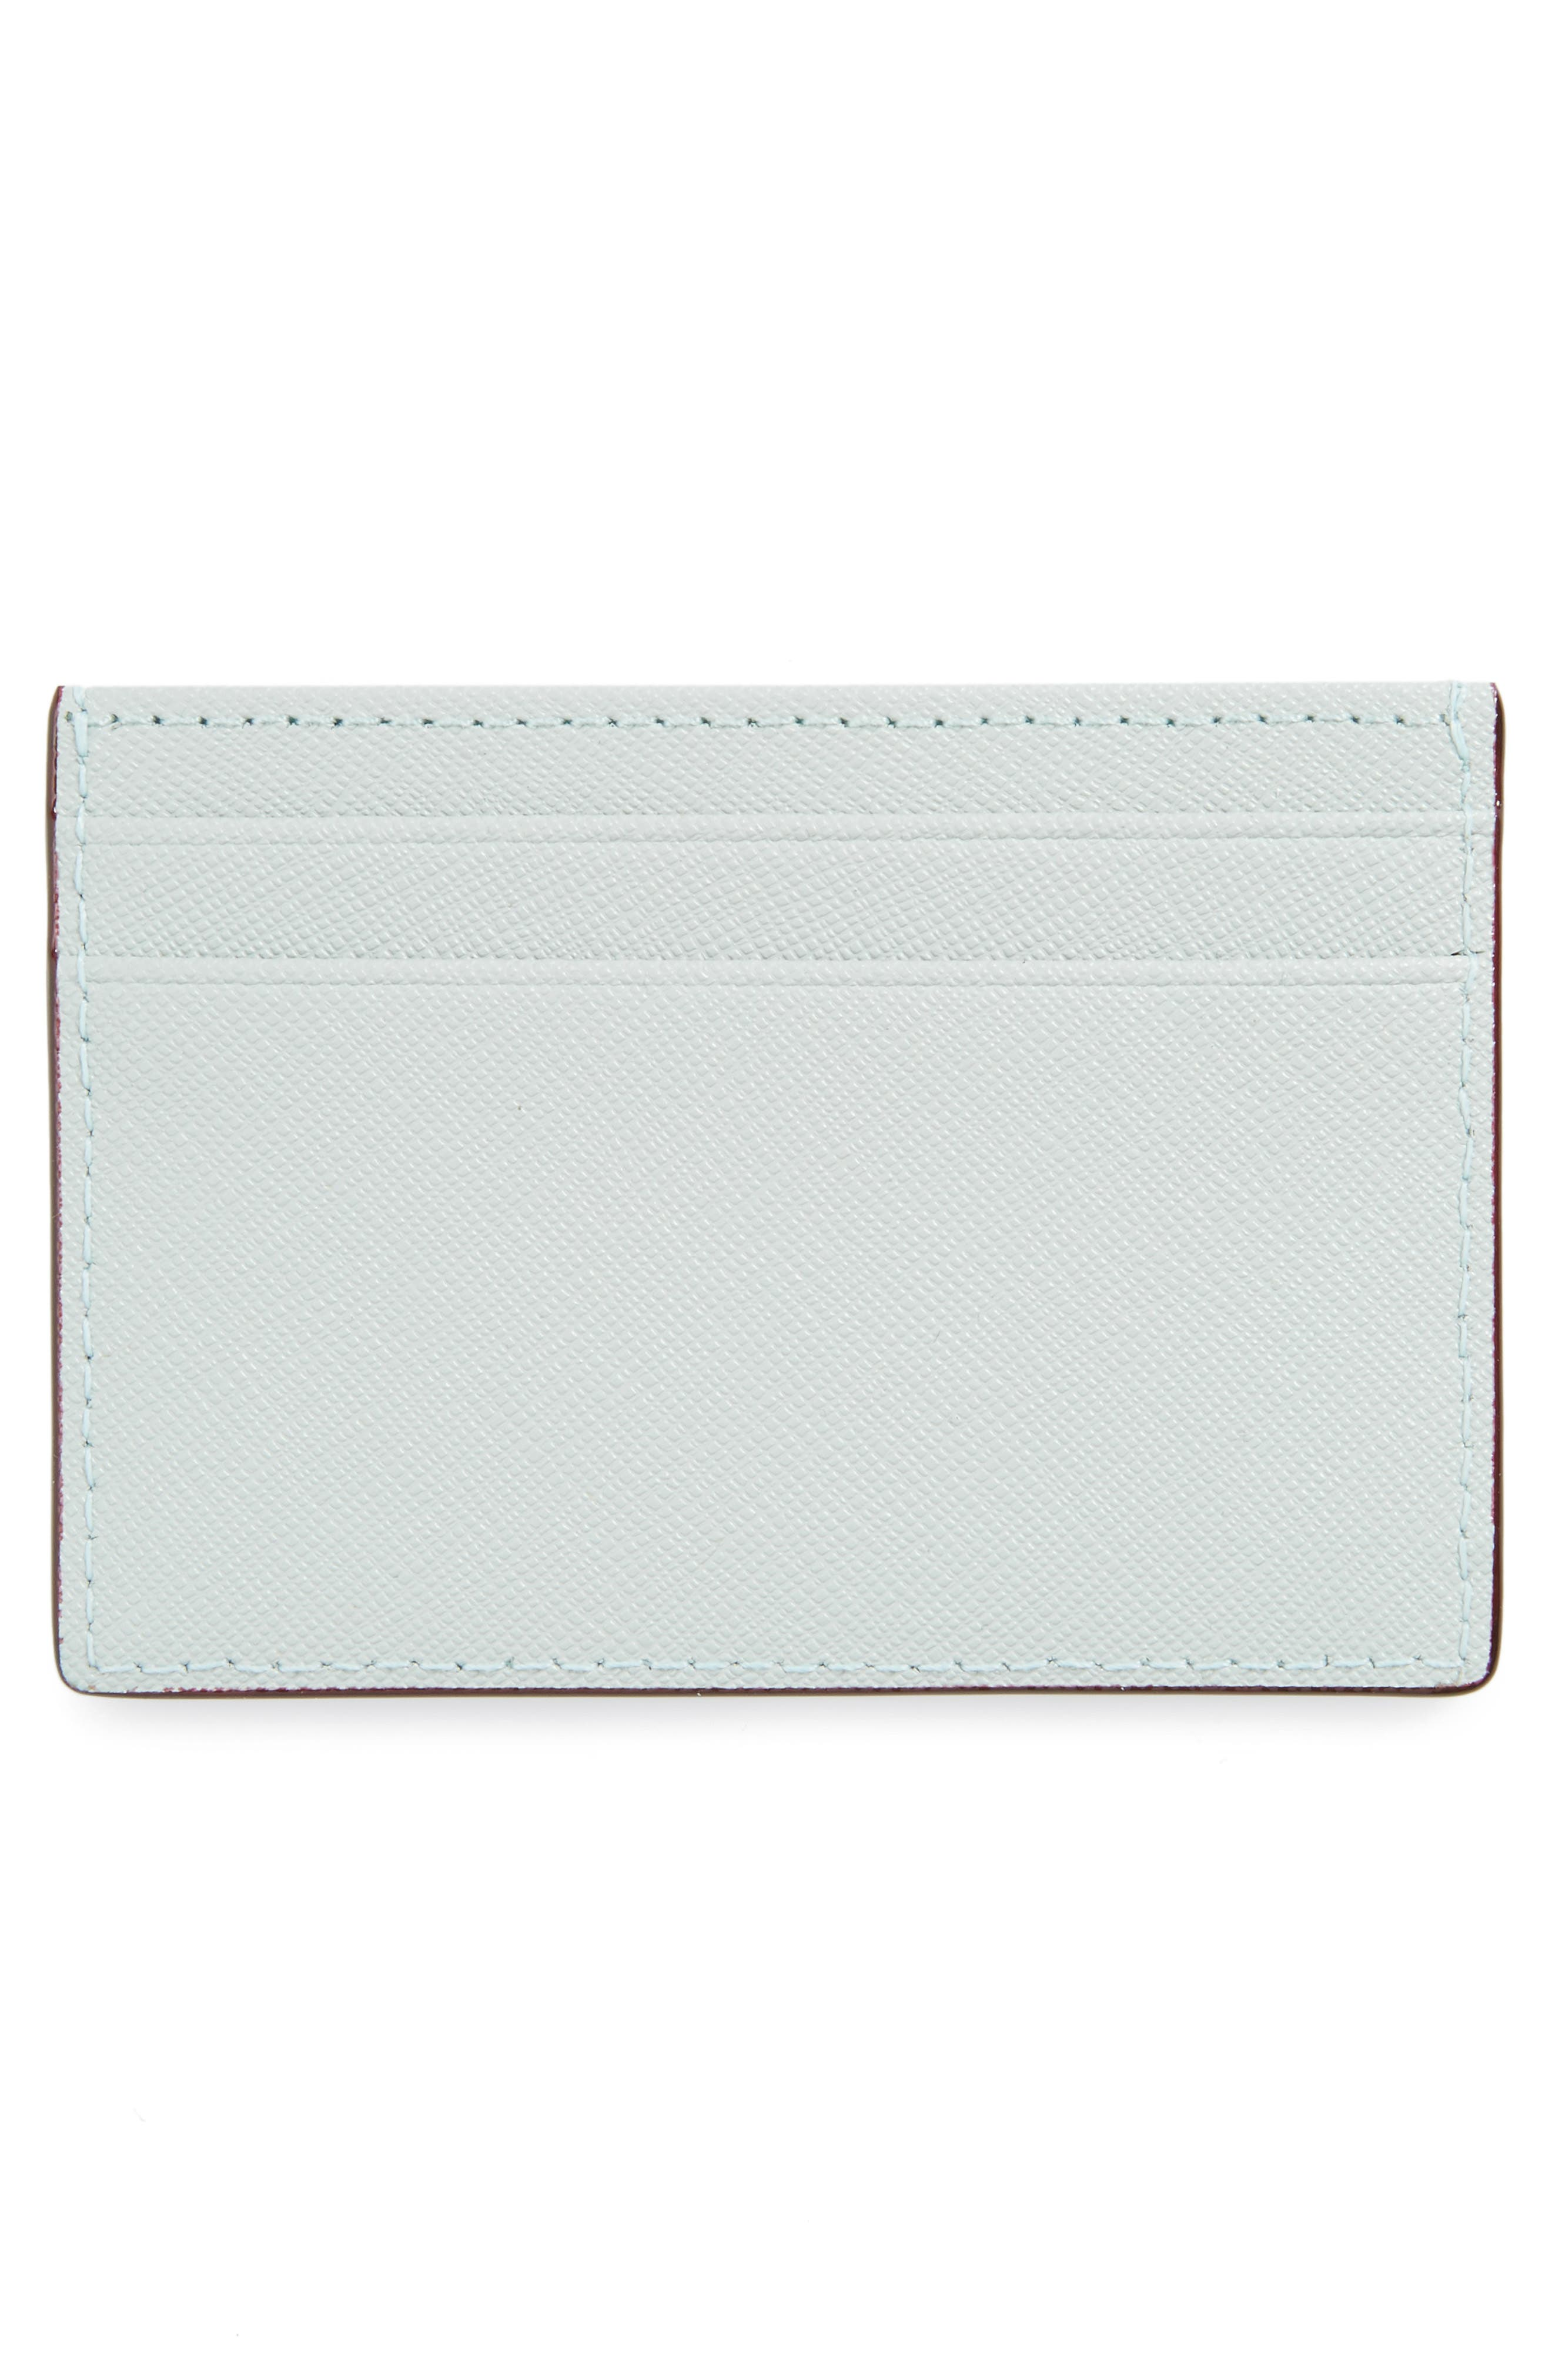 cameron street card holder,                             Alternate thumbnail 14, color,